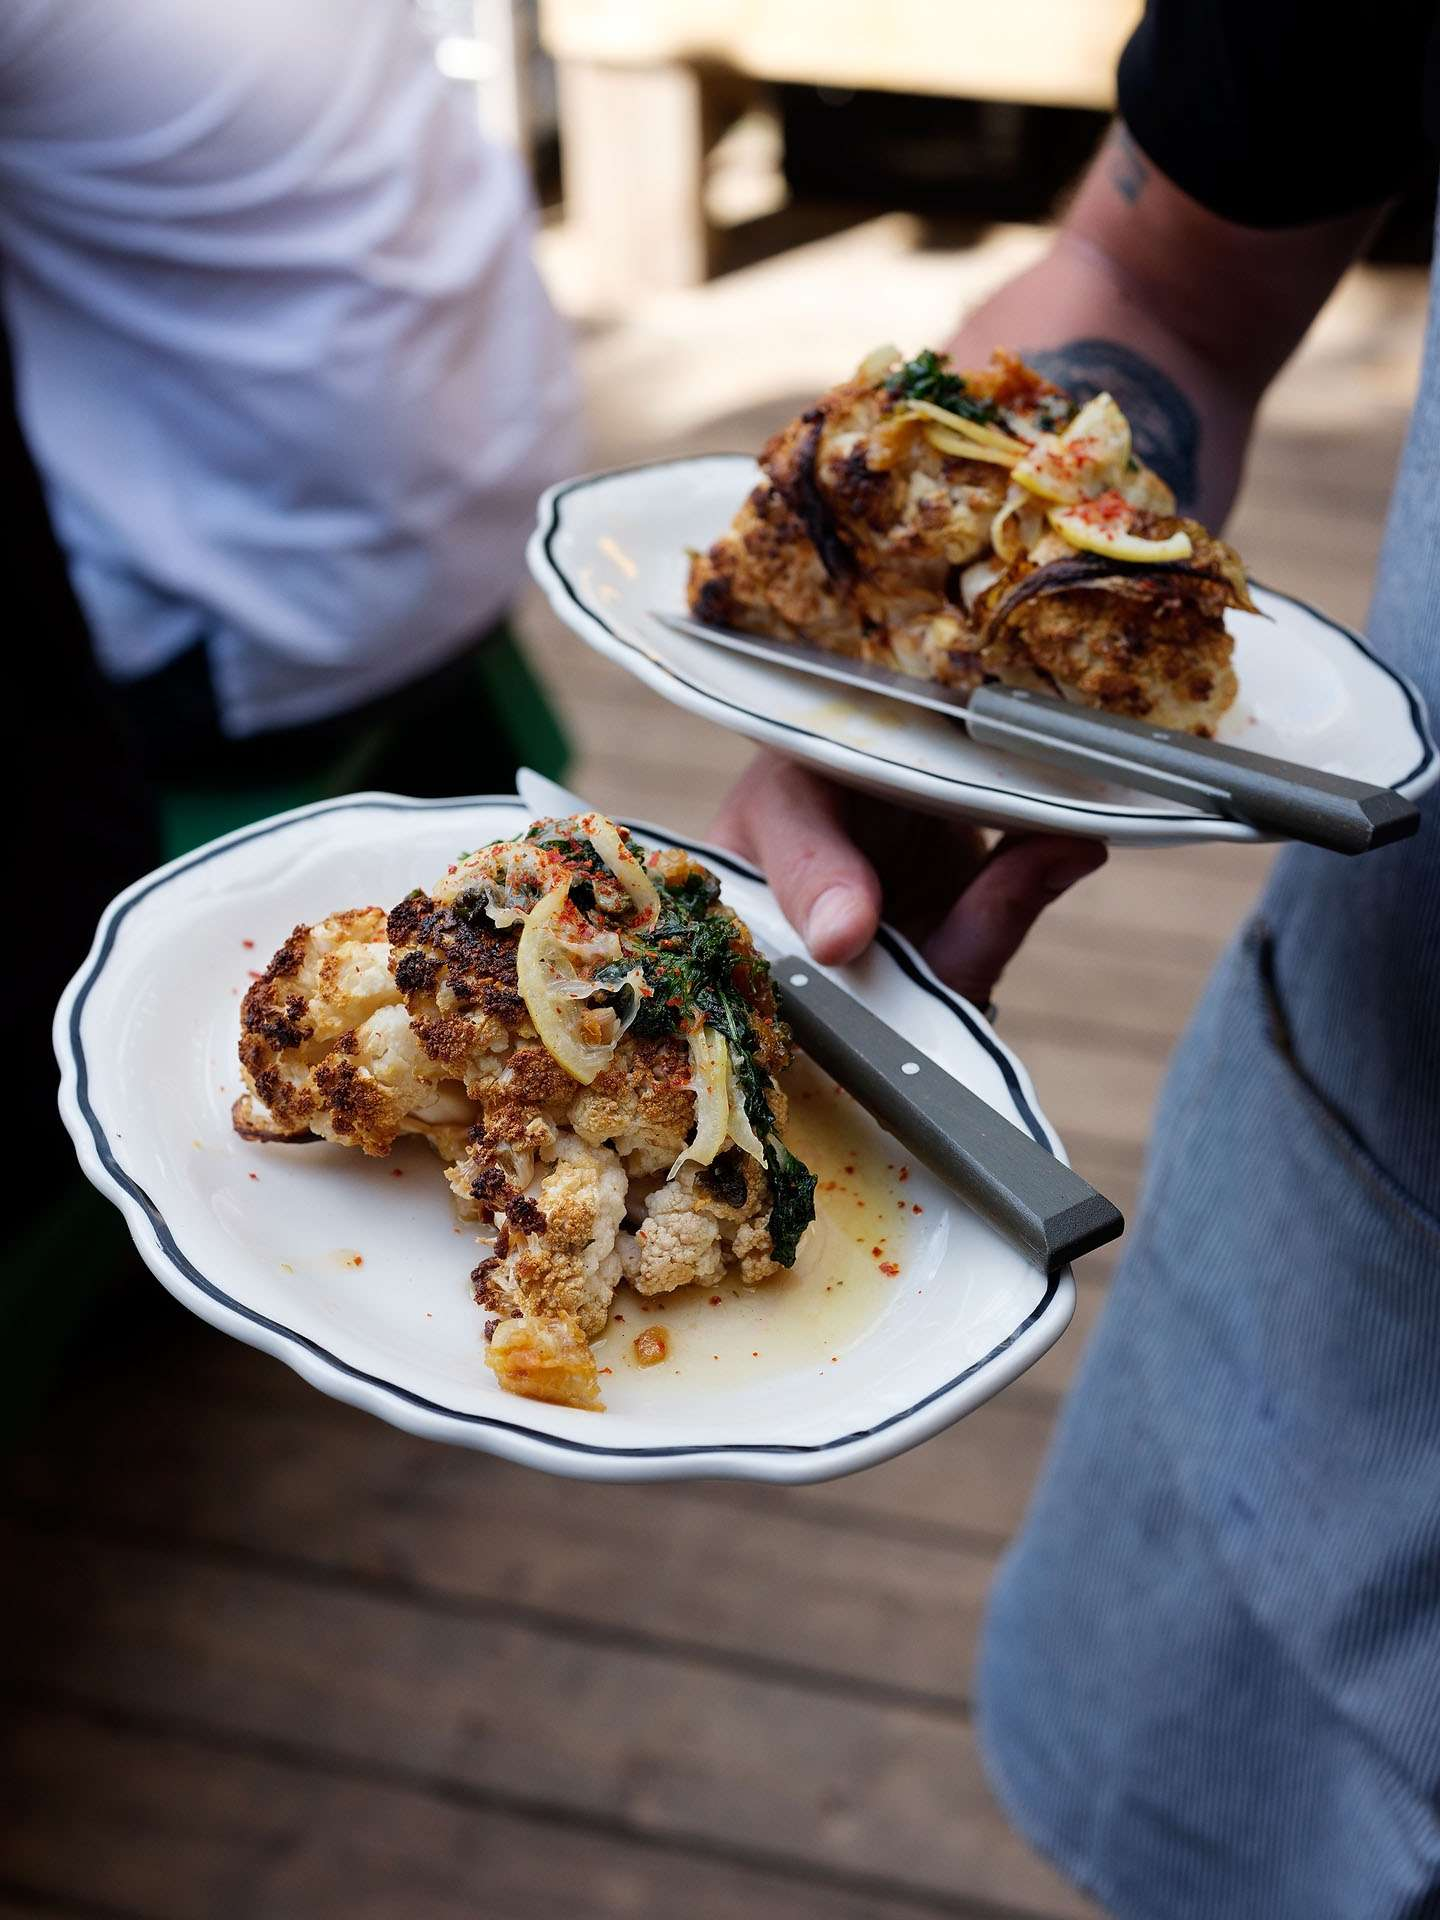 platers of roasted cauliflower held by waiter photographed by Guillaume Simoneau as part of Off Duty Montreal series for The Wall Street Journal magazine